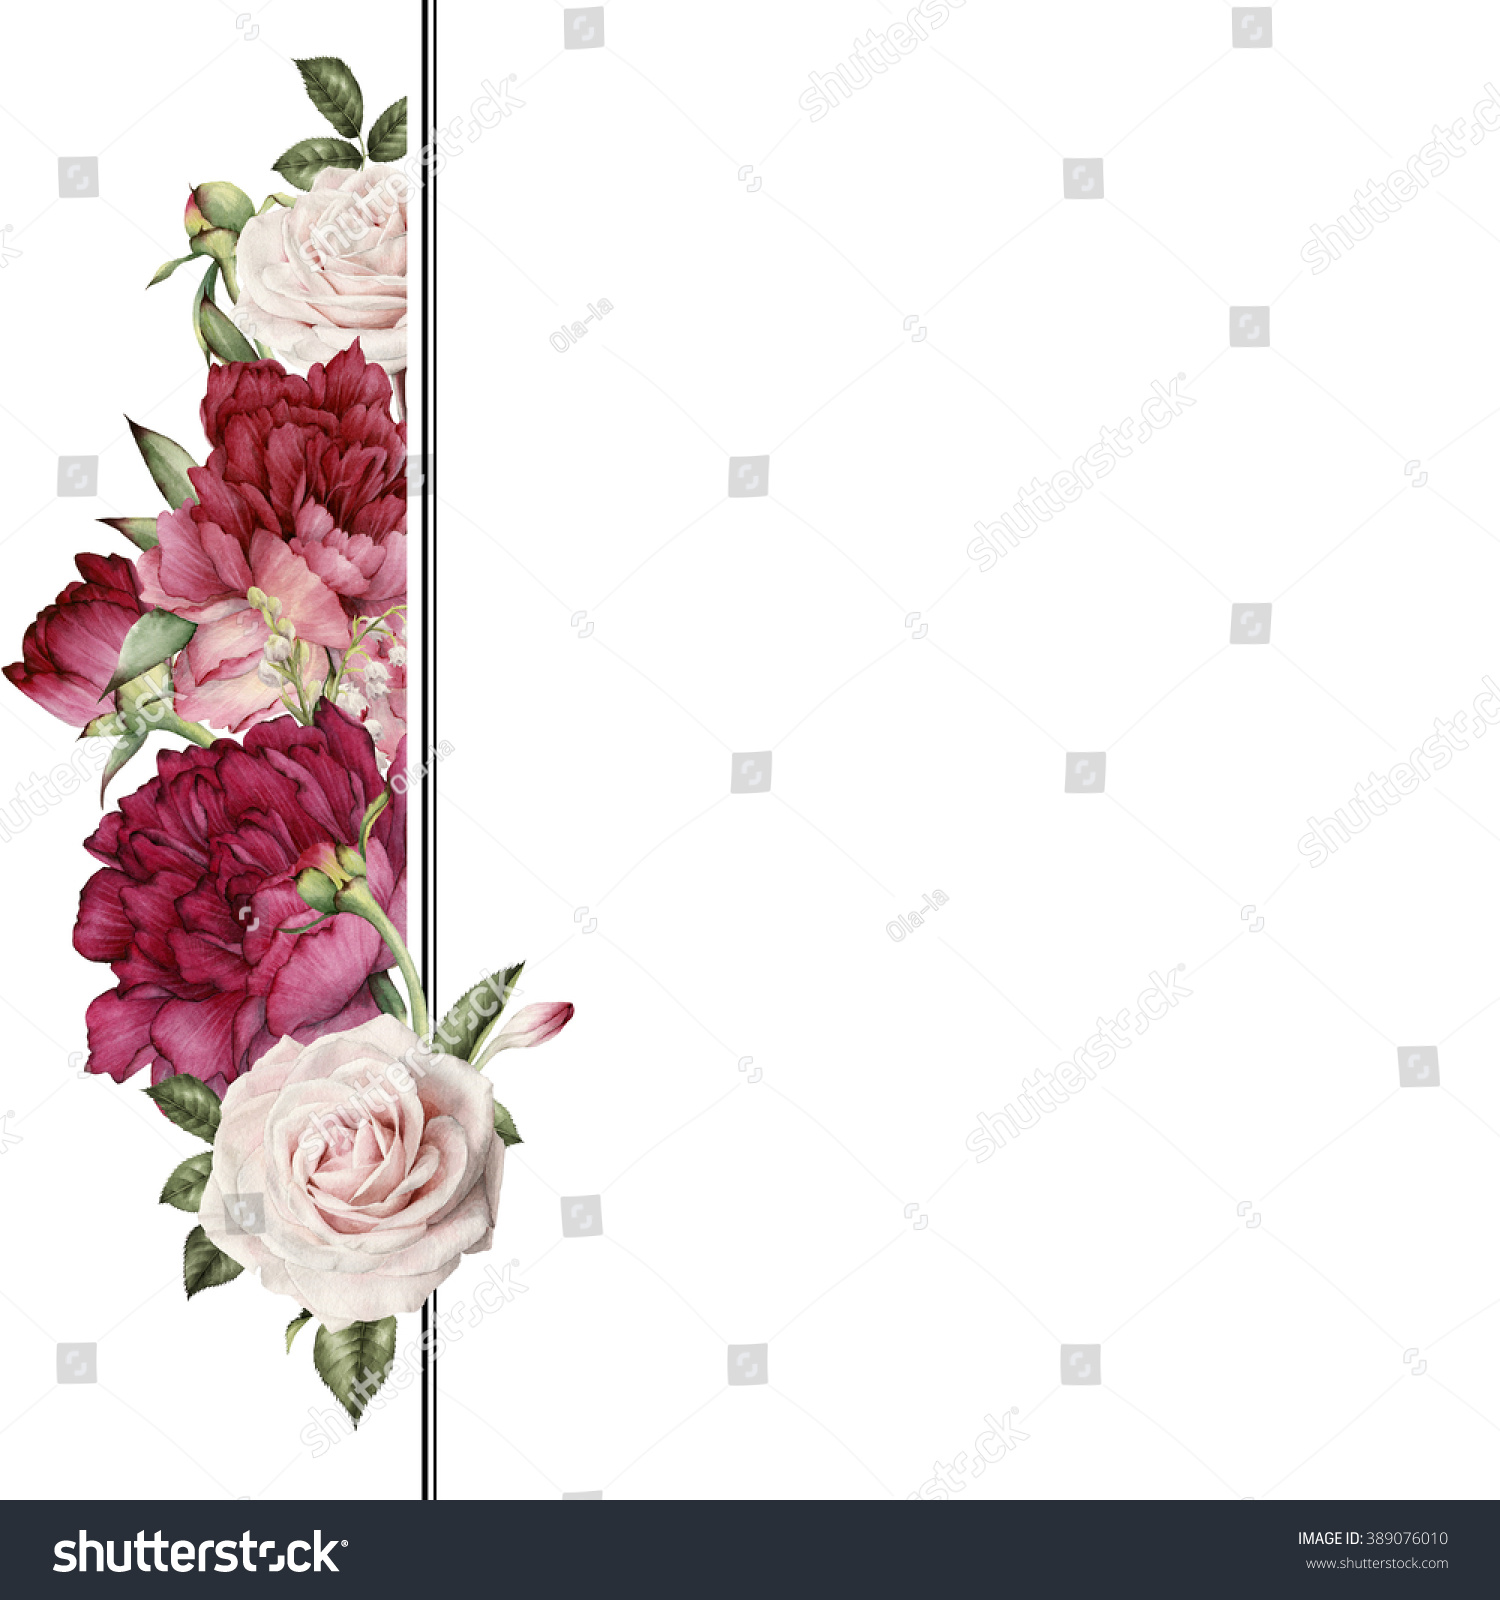 Greeting Card Flowers Watercolor Can Be Stock Illustration 389076010